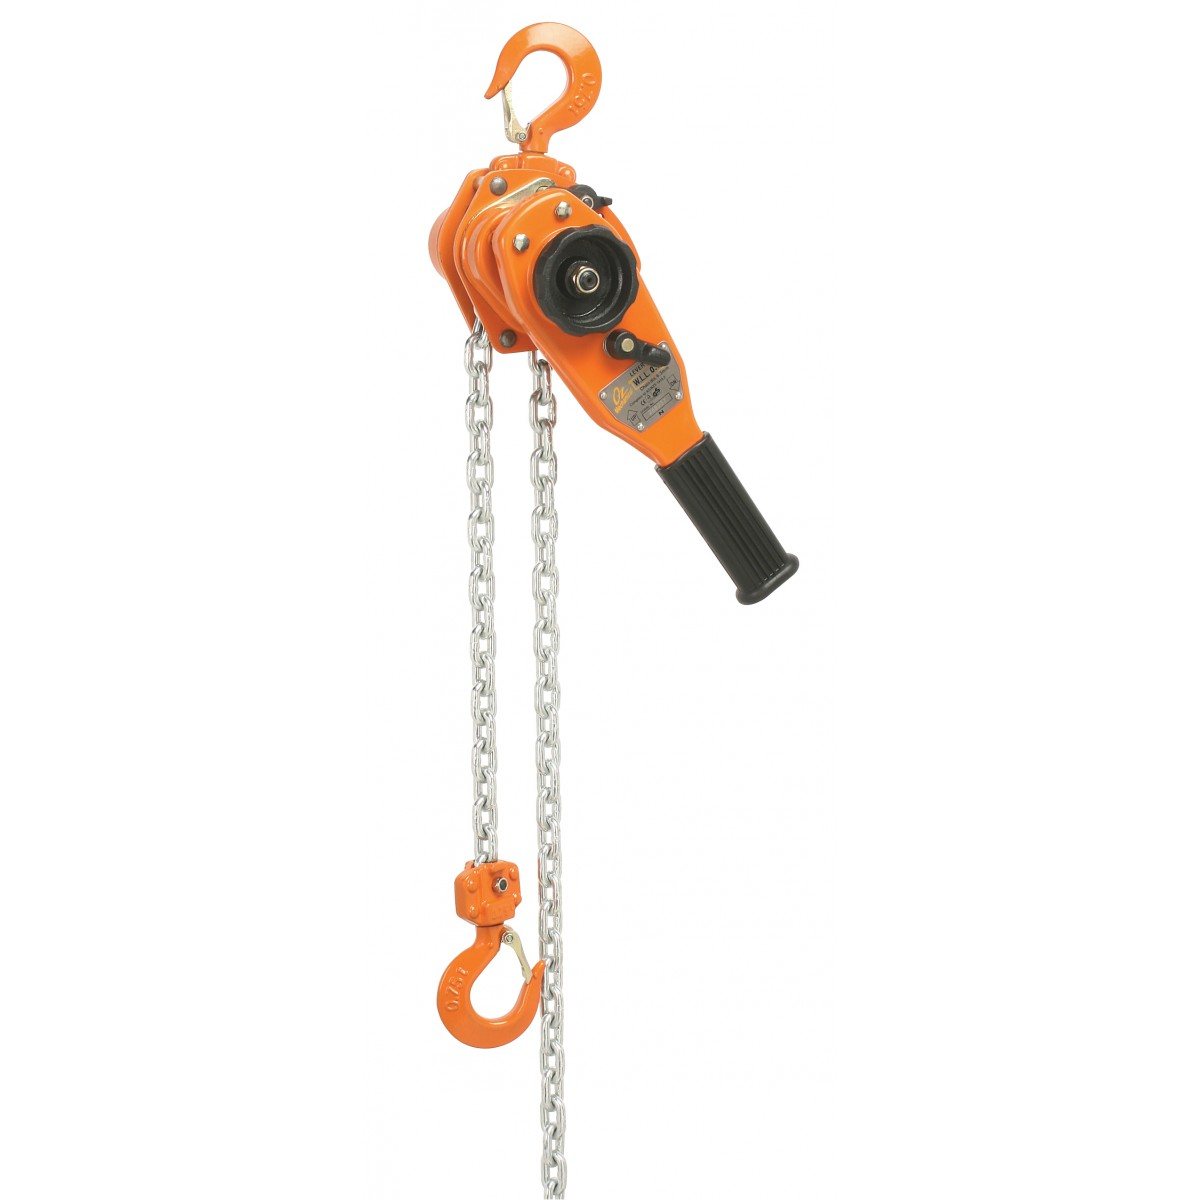 oz_block_lever_hoist_Mechanical